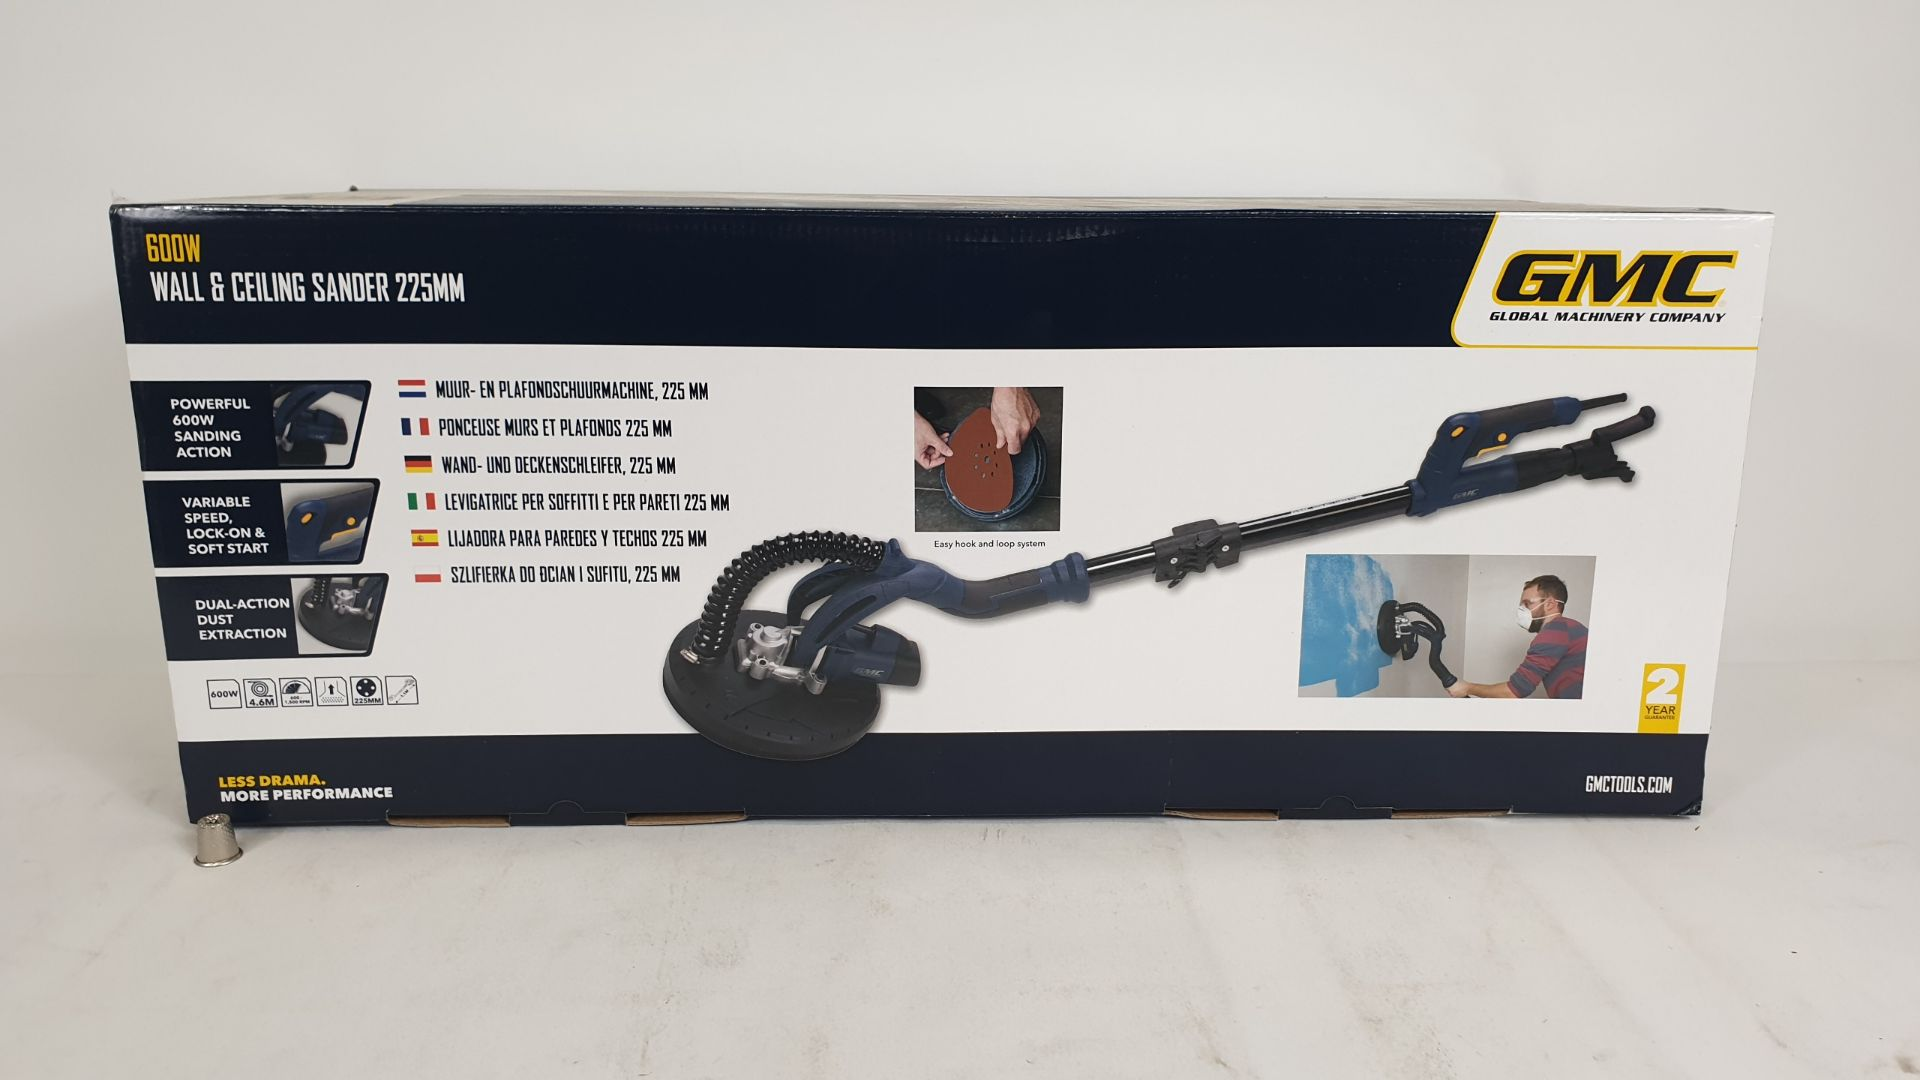 Lot 1553 - (LOT FOR THURSDAY 28TH MAY AUCTION) GMC 600W WALL AND CEILING SANDER 225M (PRODUCT CODE 264803) - (